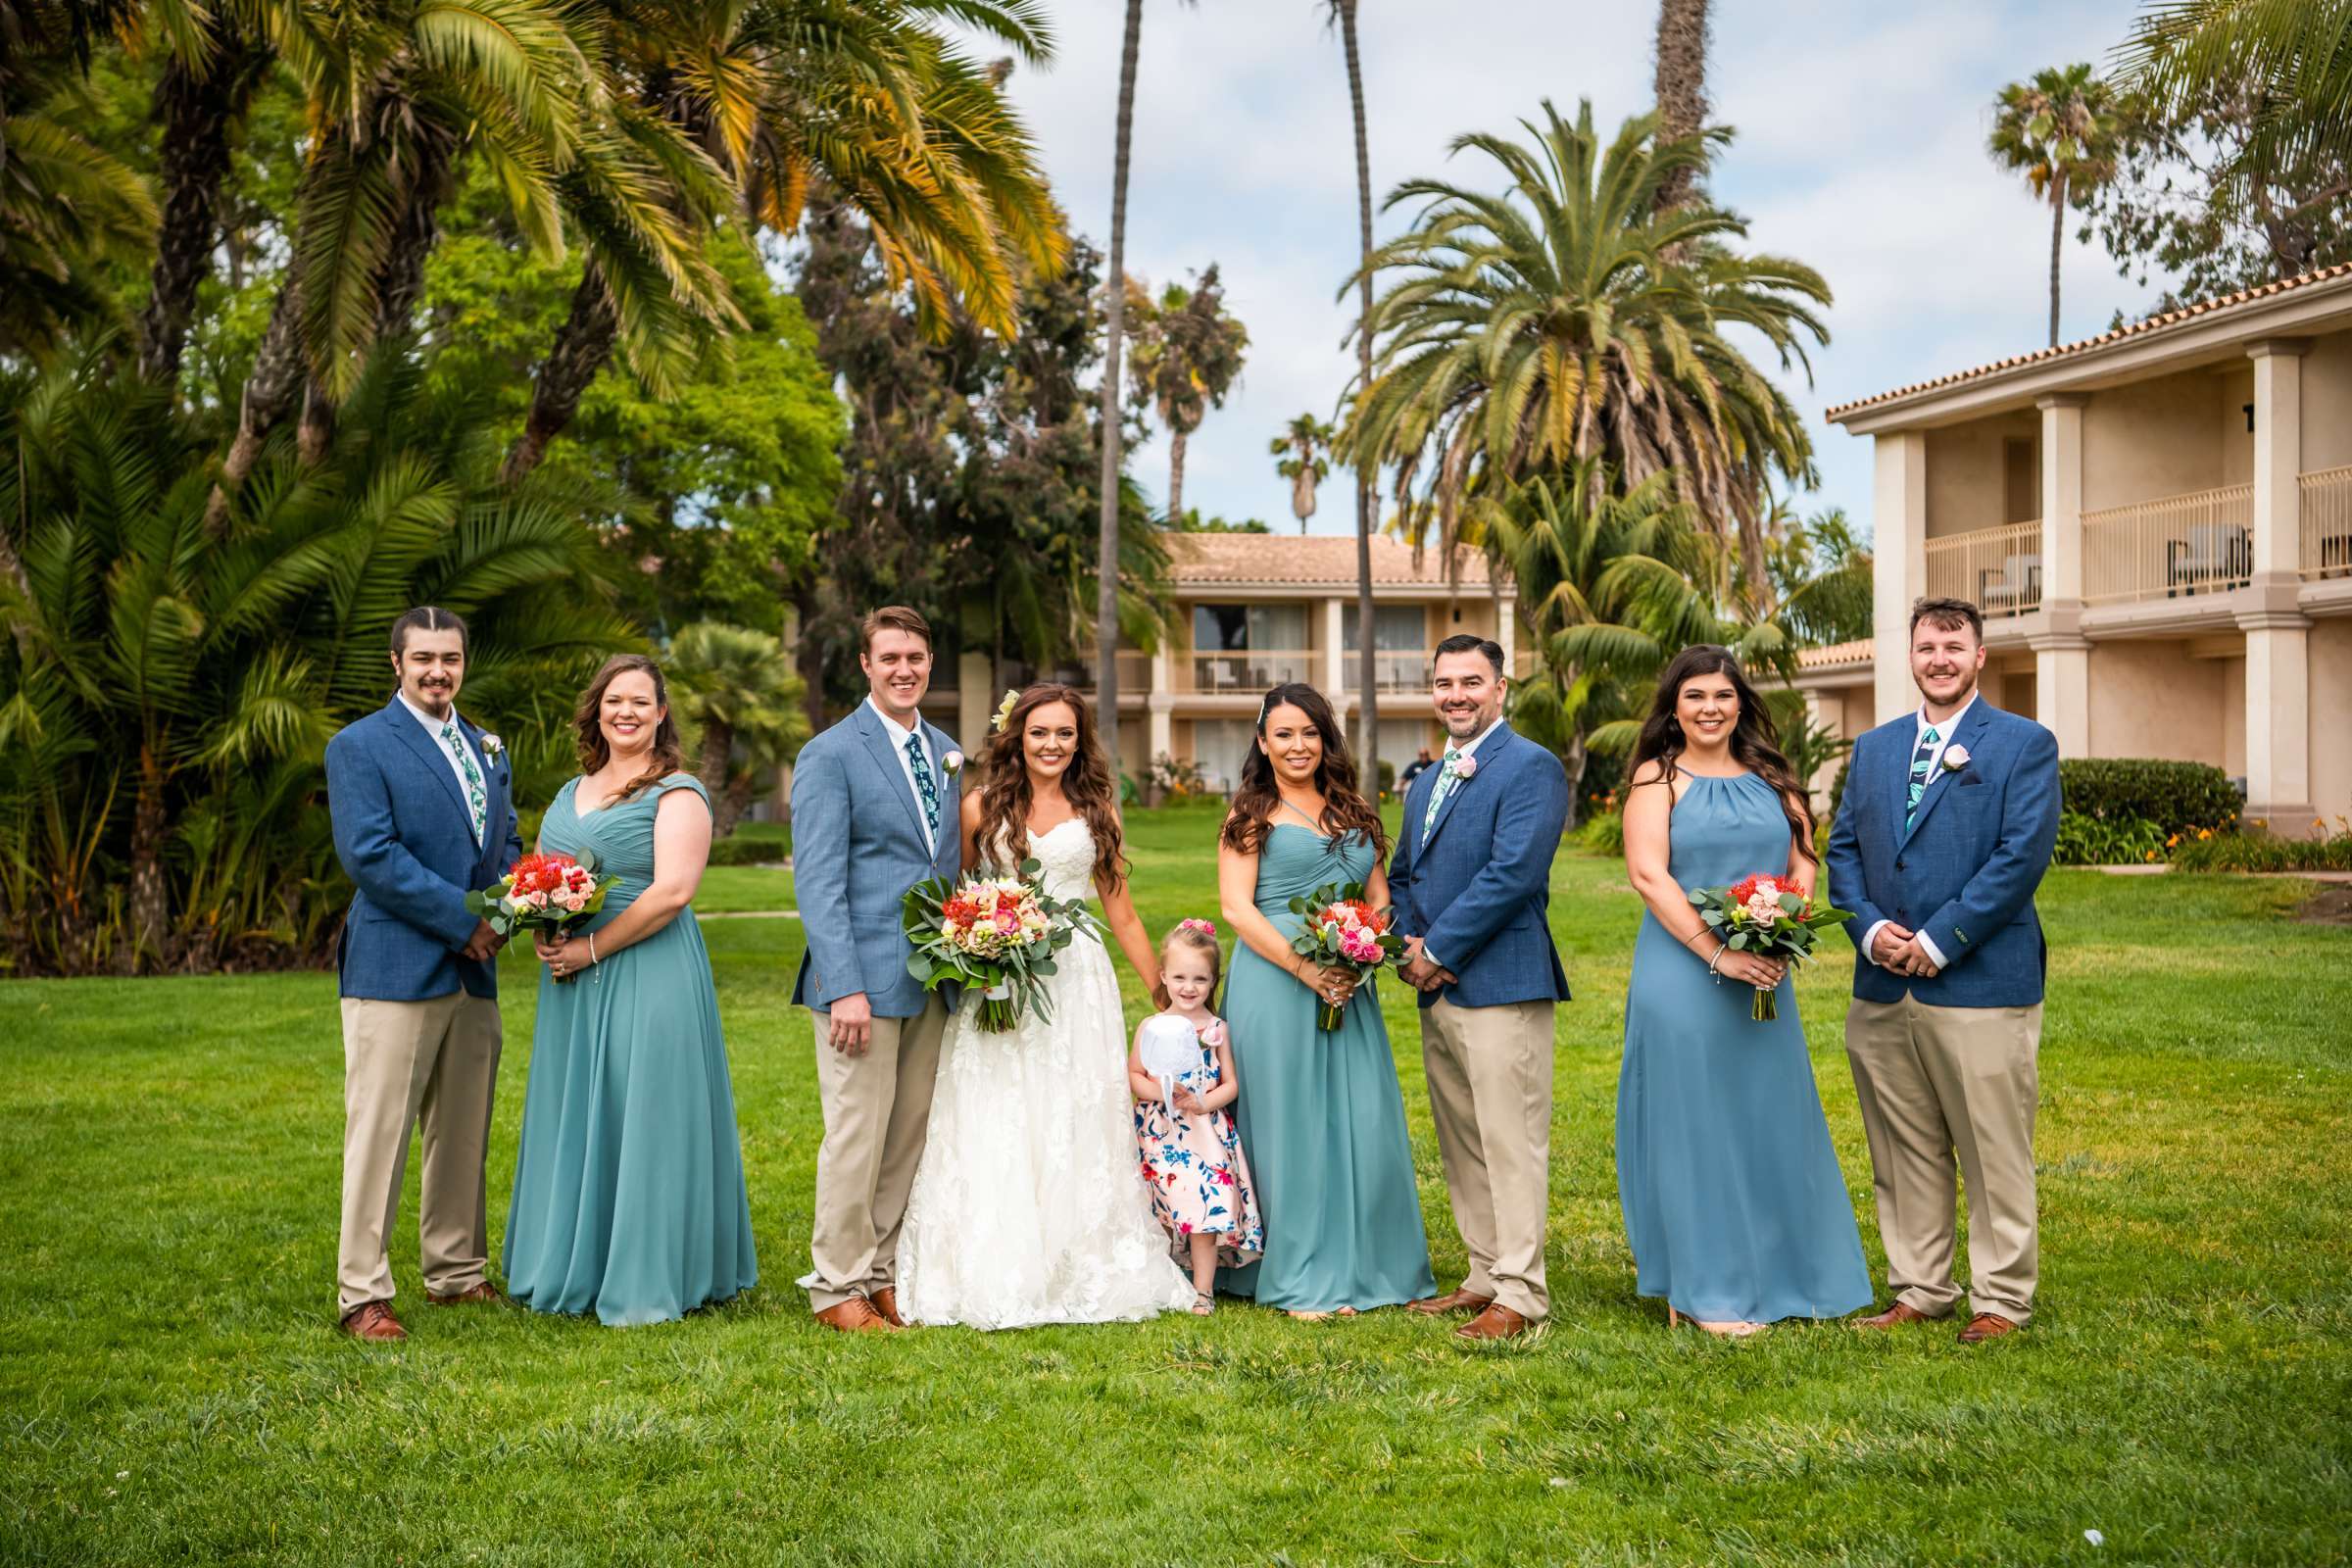 San Diego Mission Bay Resort Wedding coordinated by Cafe Au Love, Lauren and Adam Wedding Photo #88 by True Photography